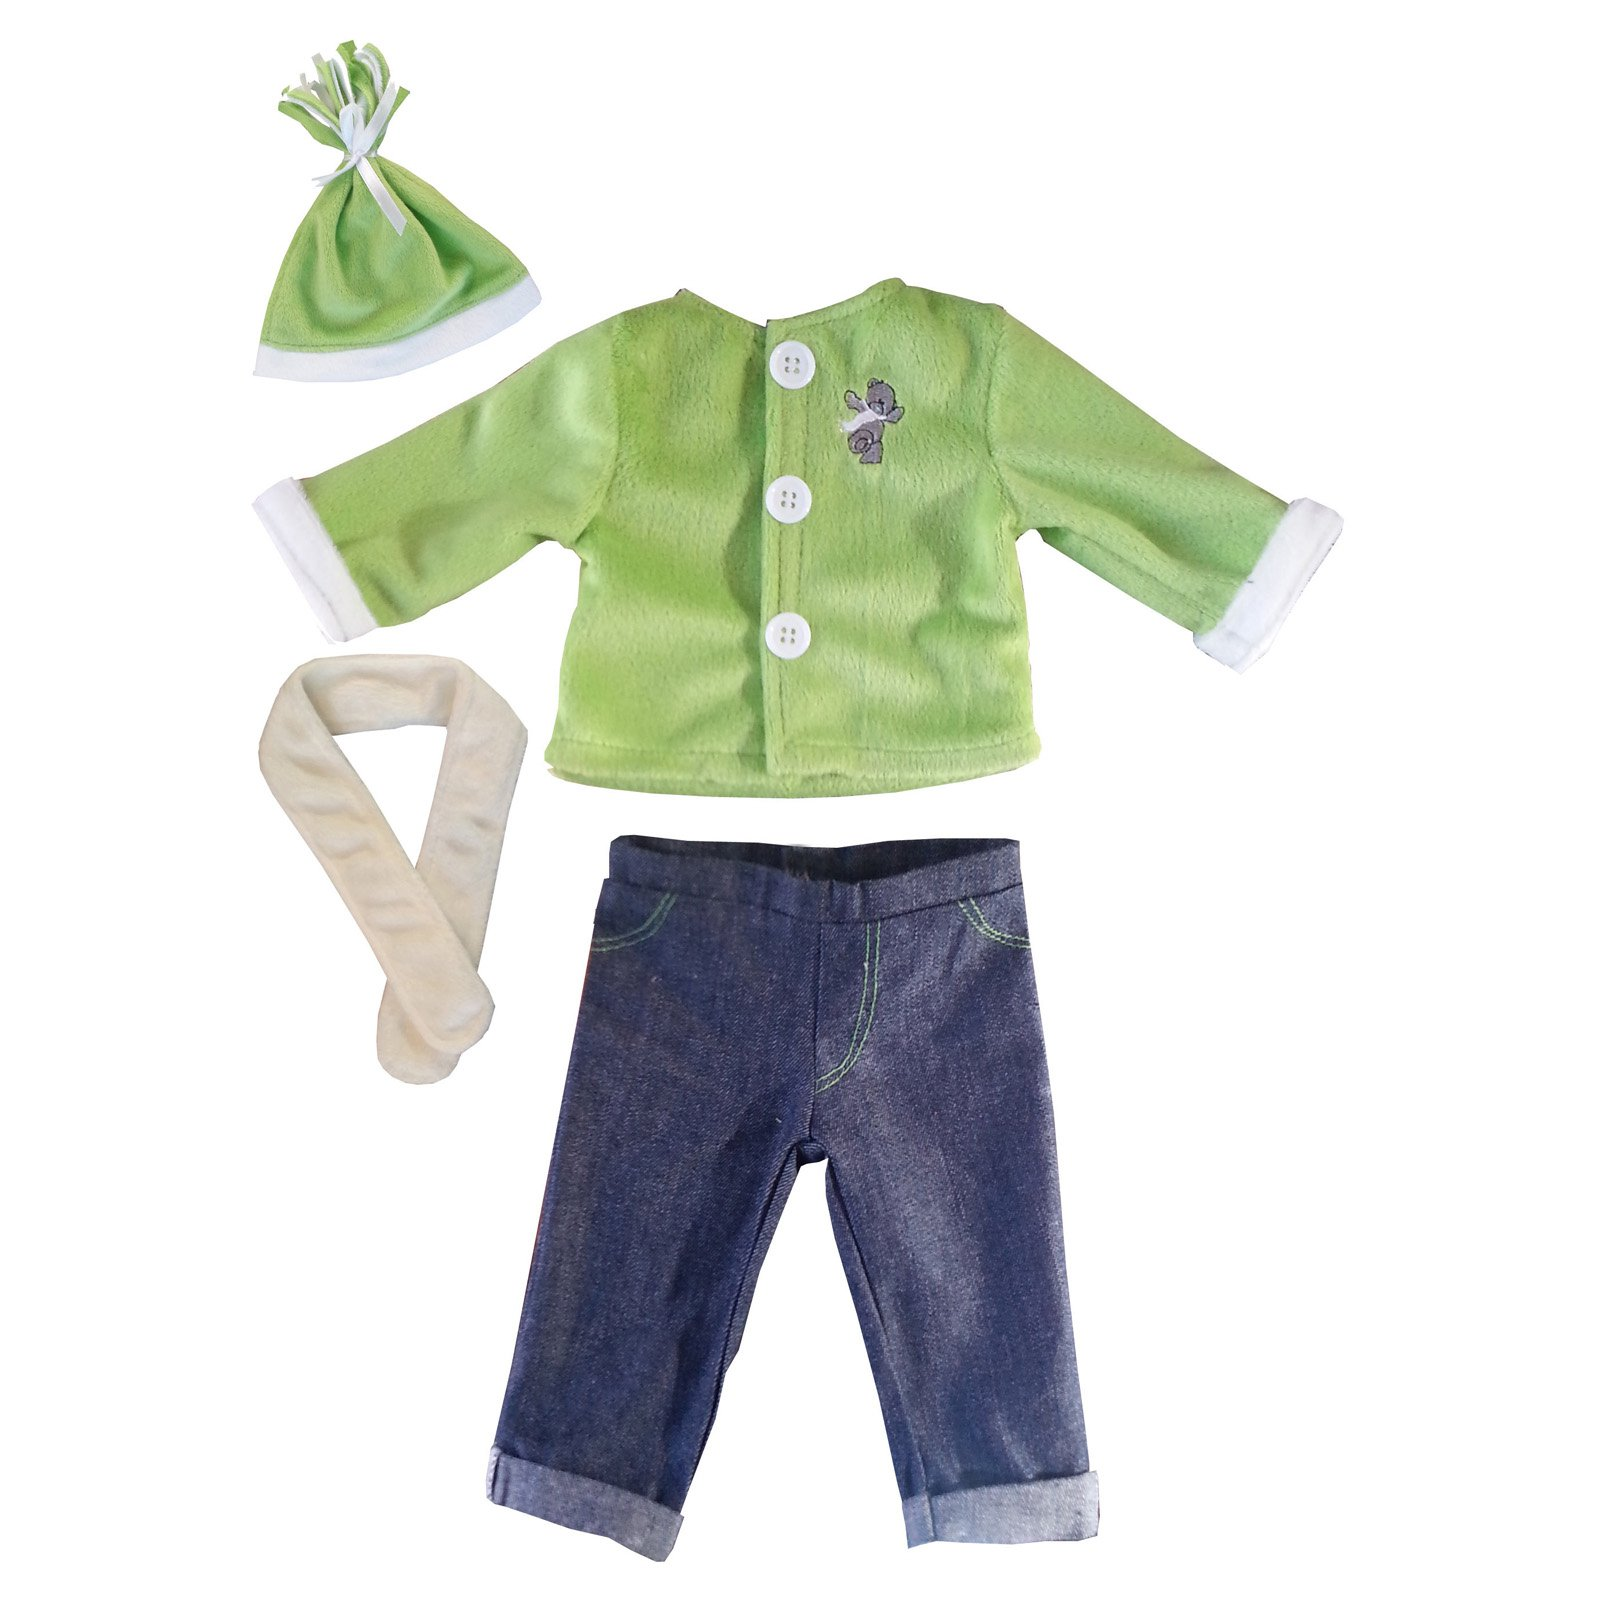 Molly P. Margot 18 in. Doll Outfit